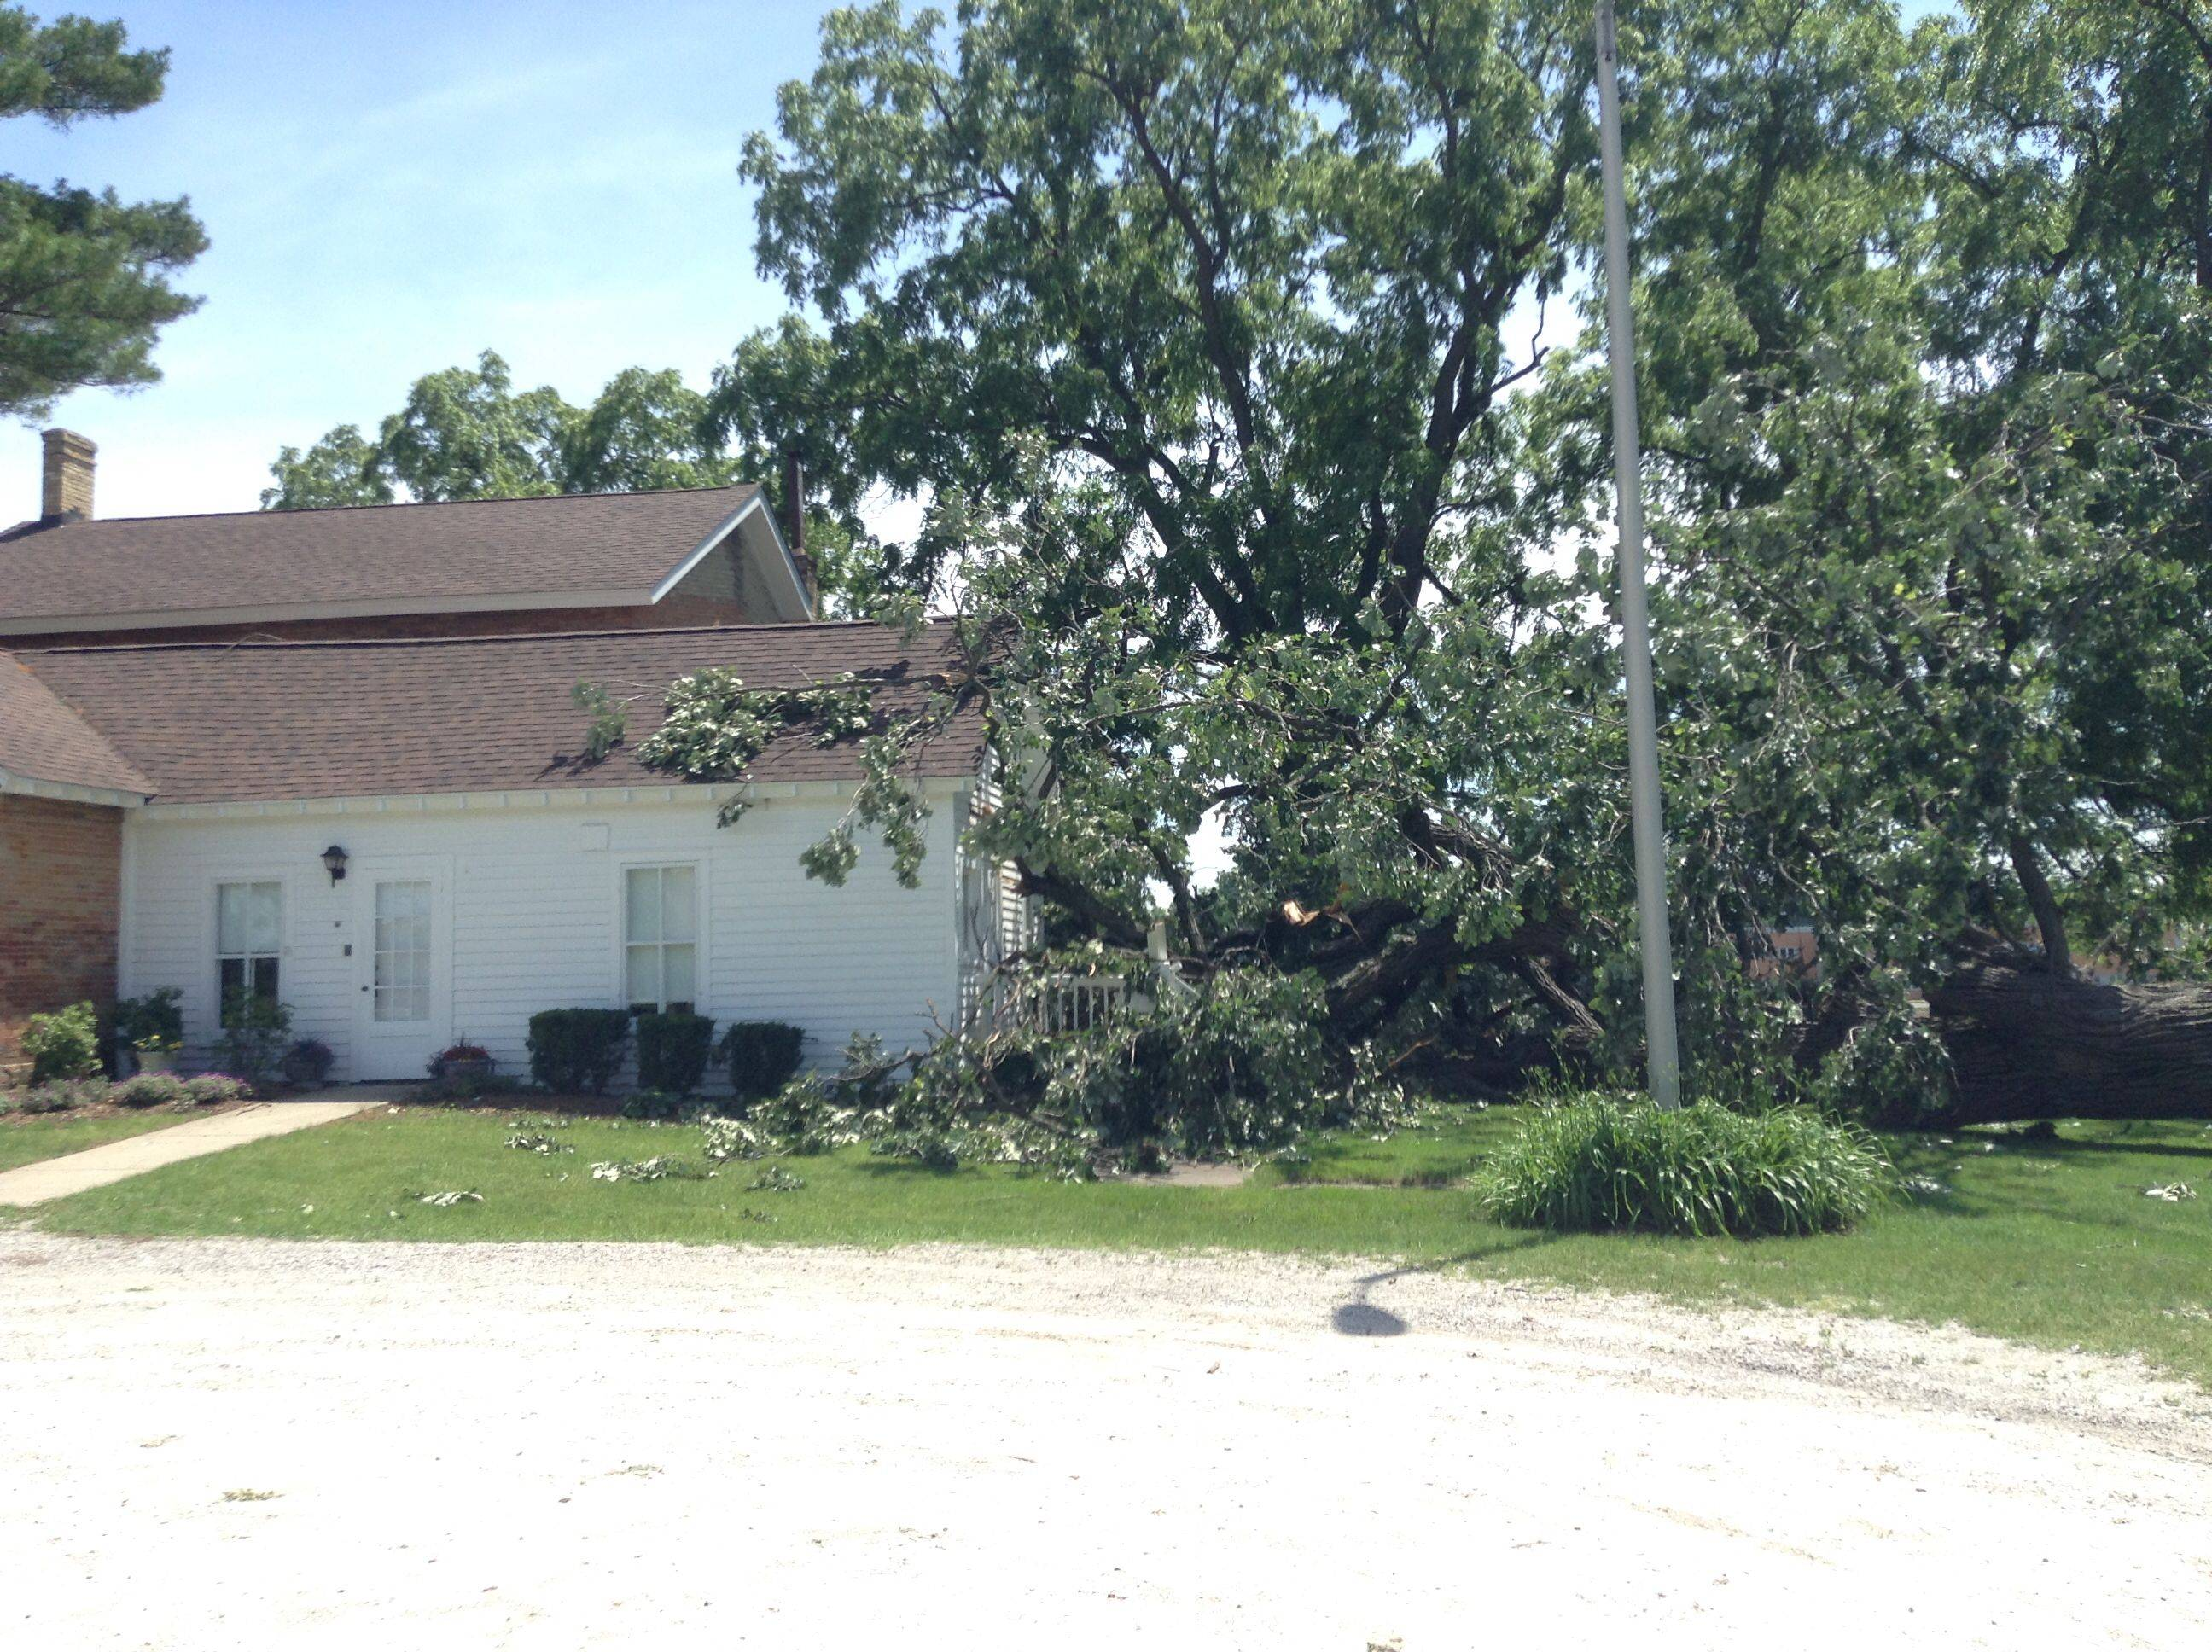 A large oak tree toppled by Saturday's storms landed on the porch of the Andrew C. Cook house, the first non-log cabin home built in Wauconda Township.